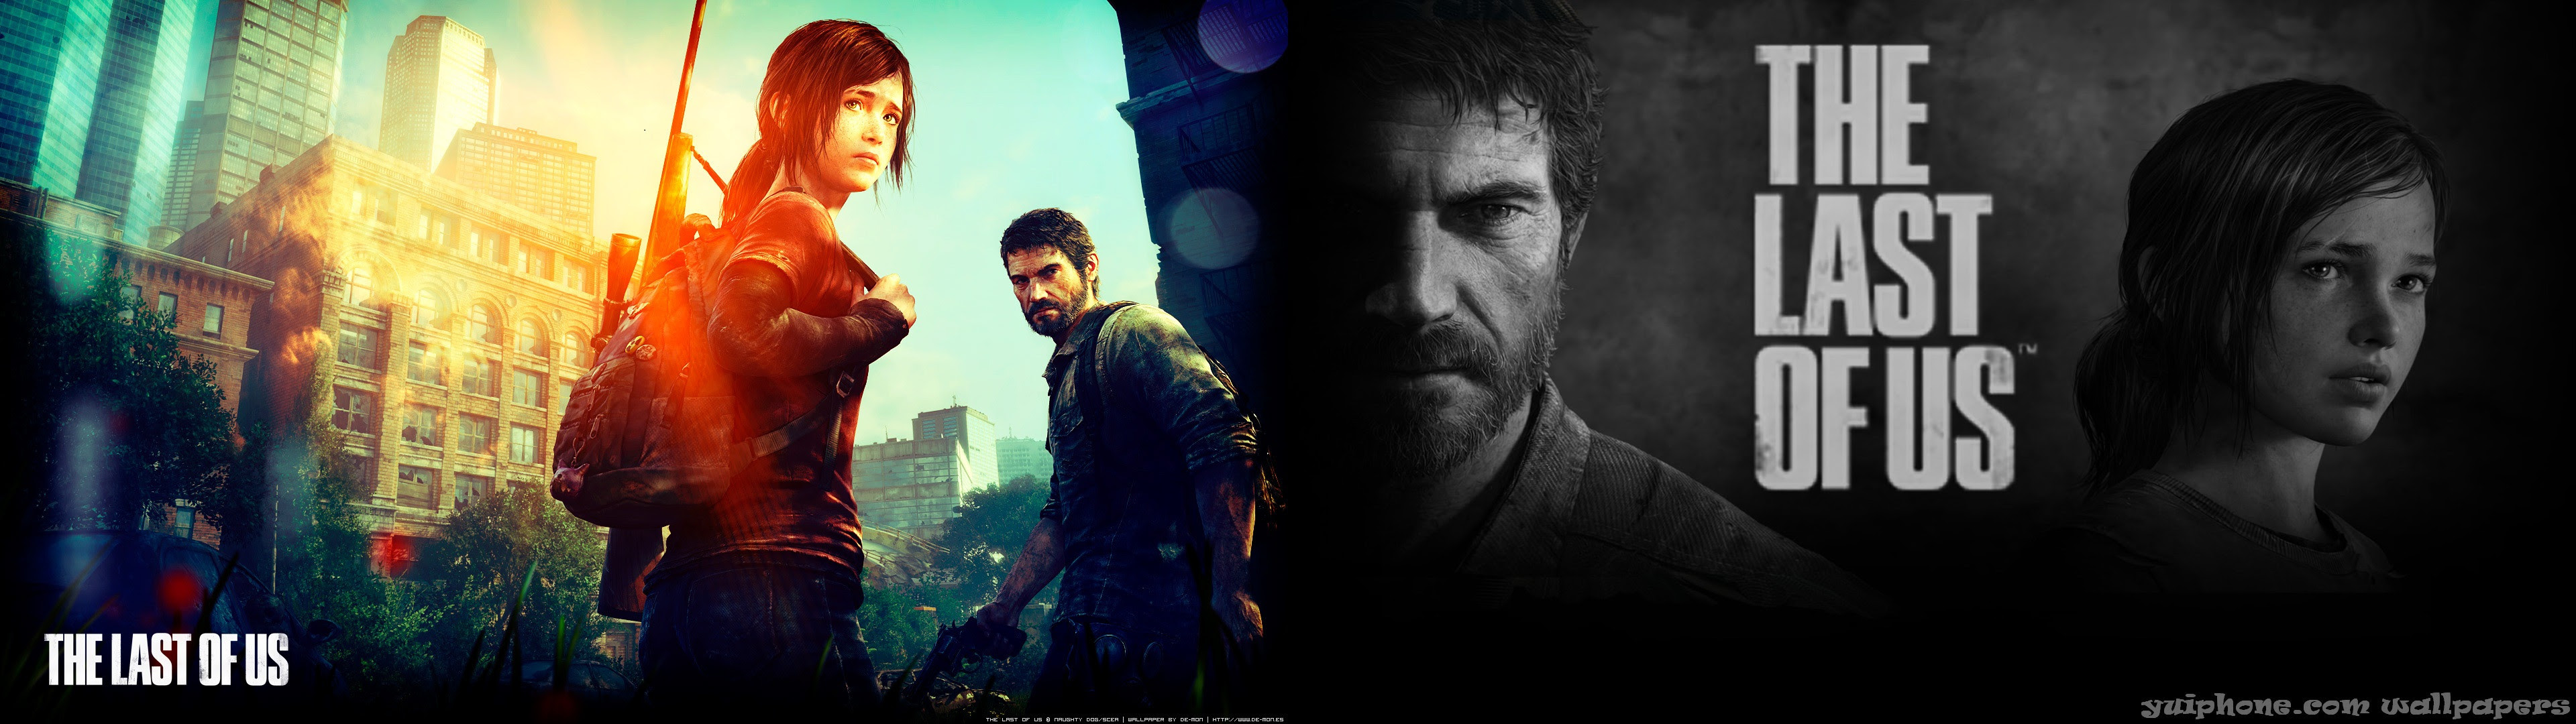 The Last Of Us Dual Screen Wallpaper Thelastofus